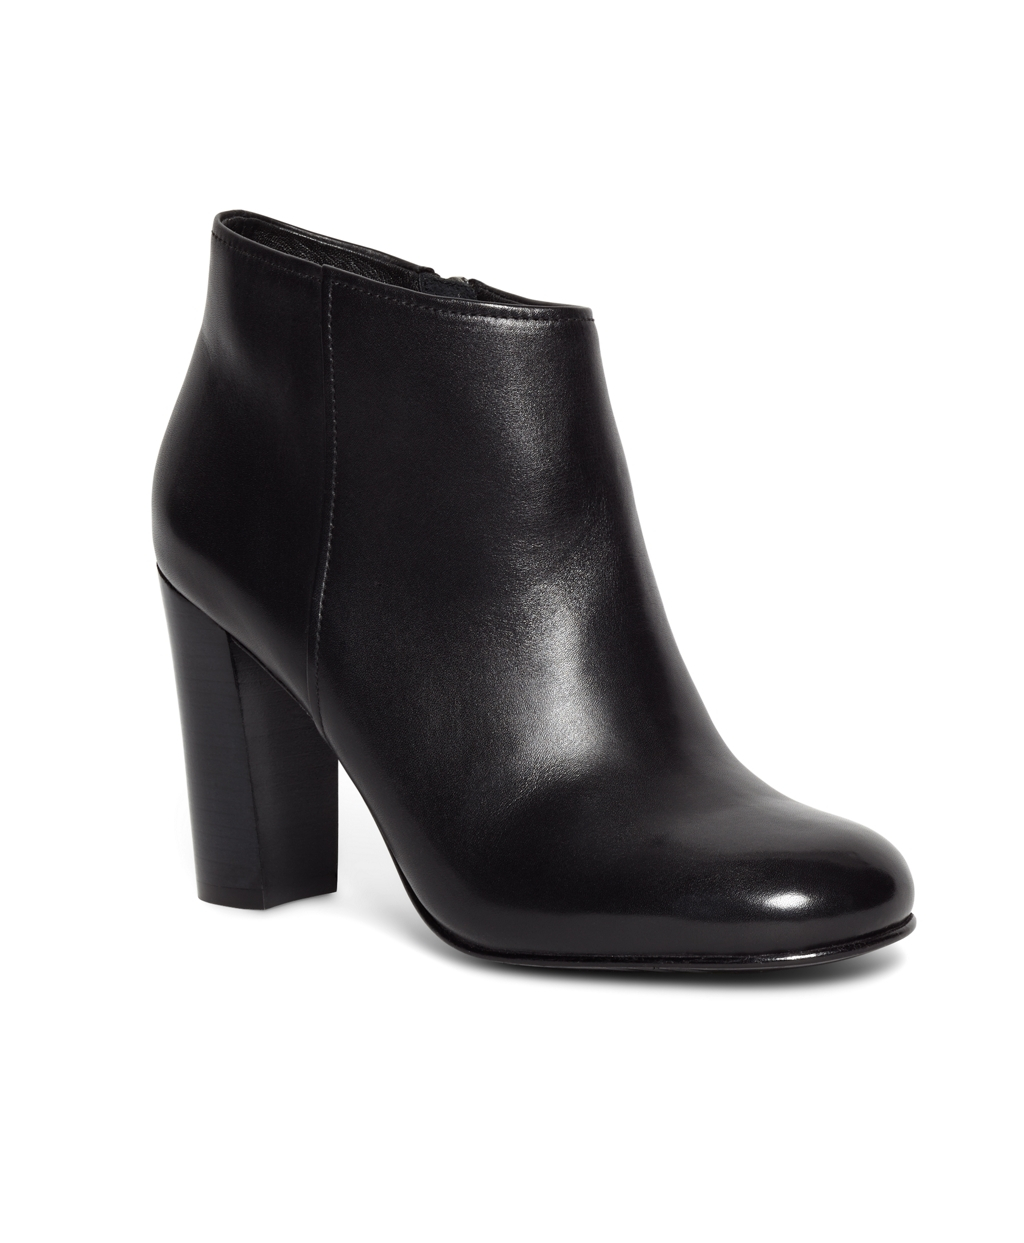 What Are Stacked Heel Shoes